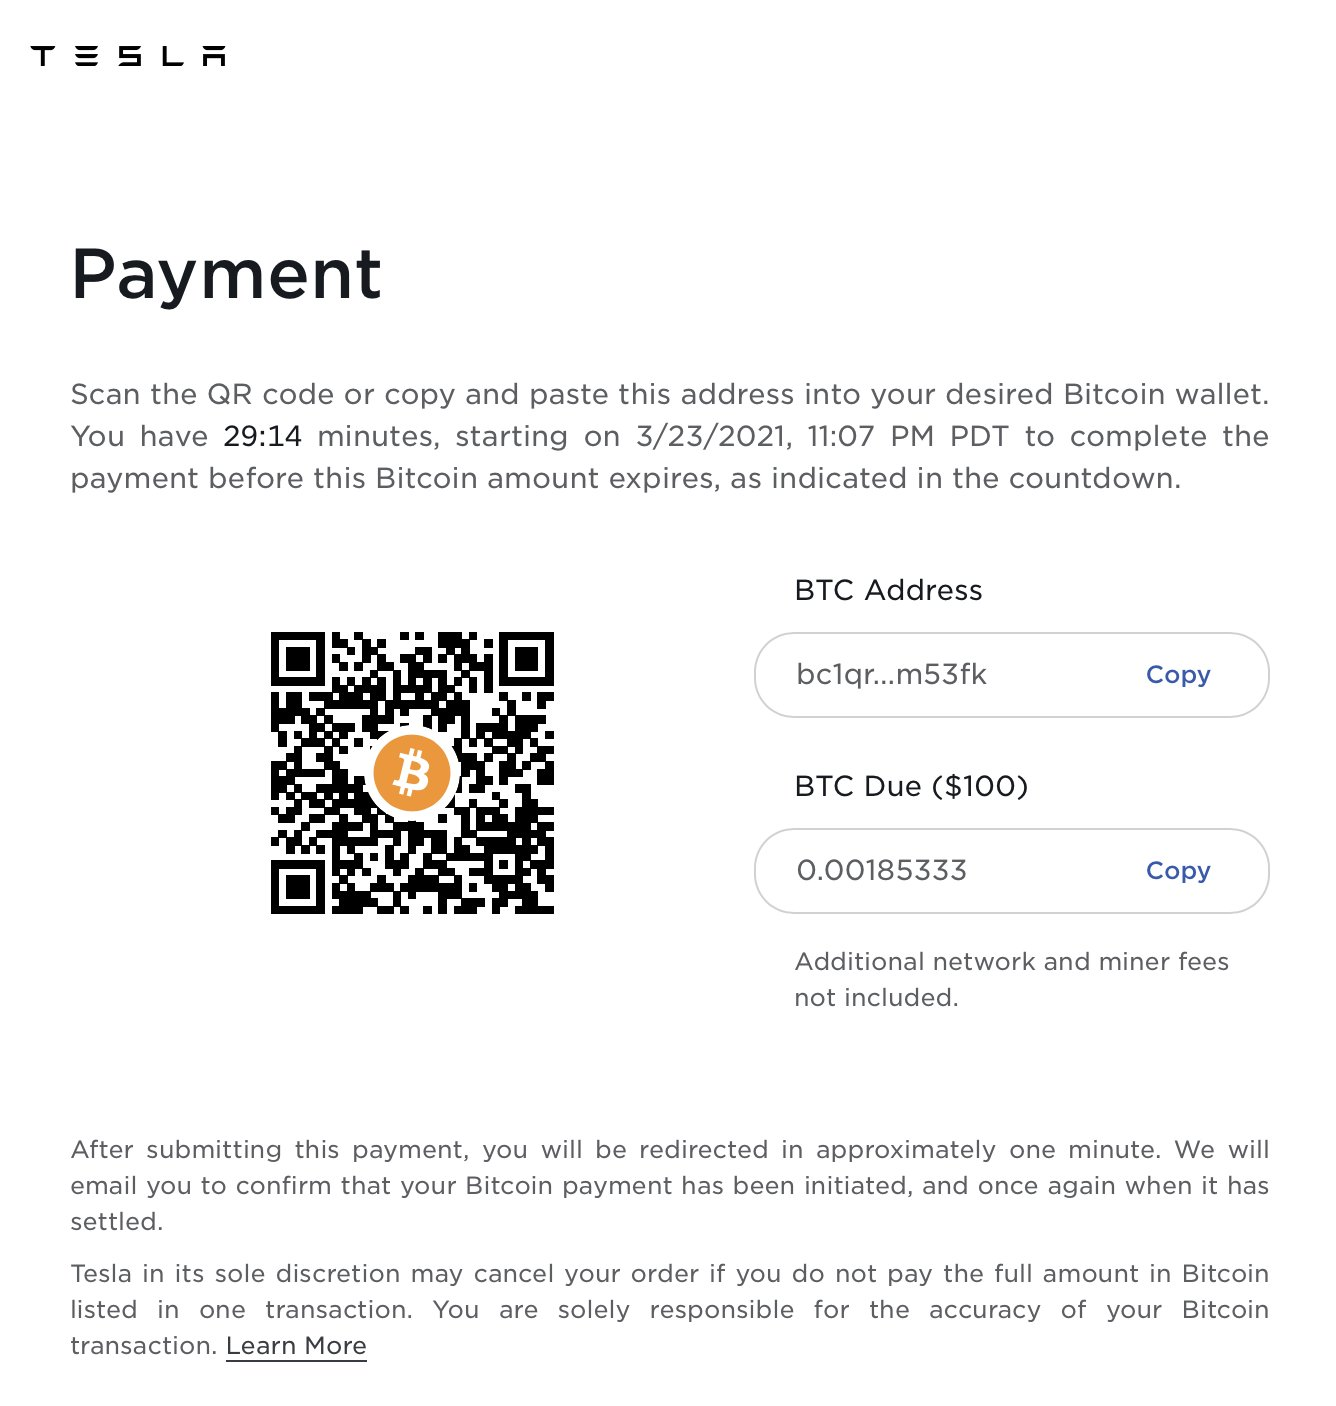 Paying Tesla with Bitcoin, March 2021